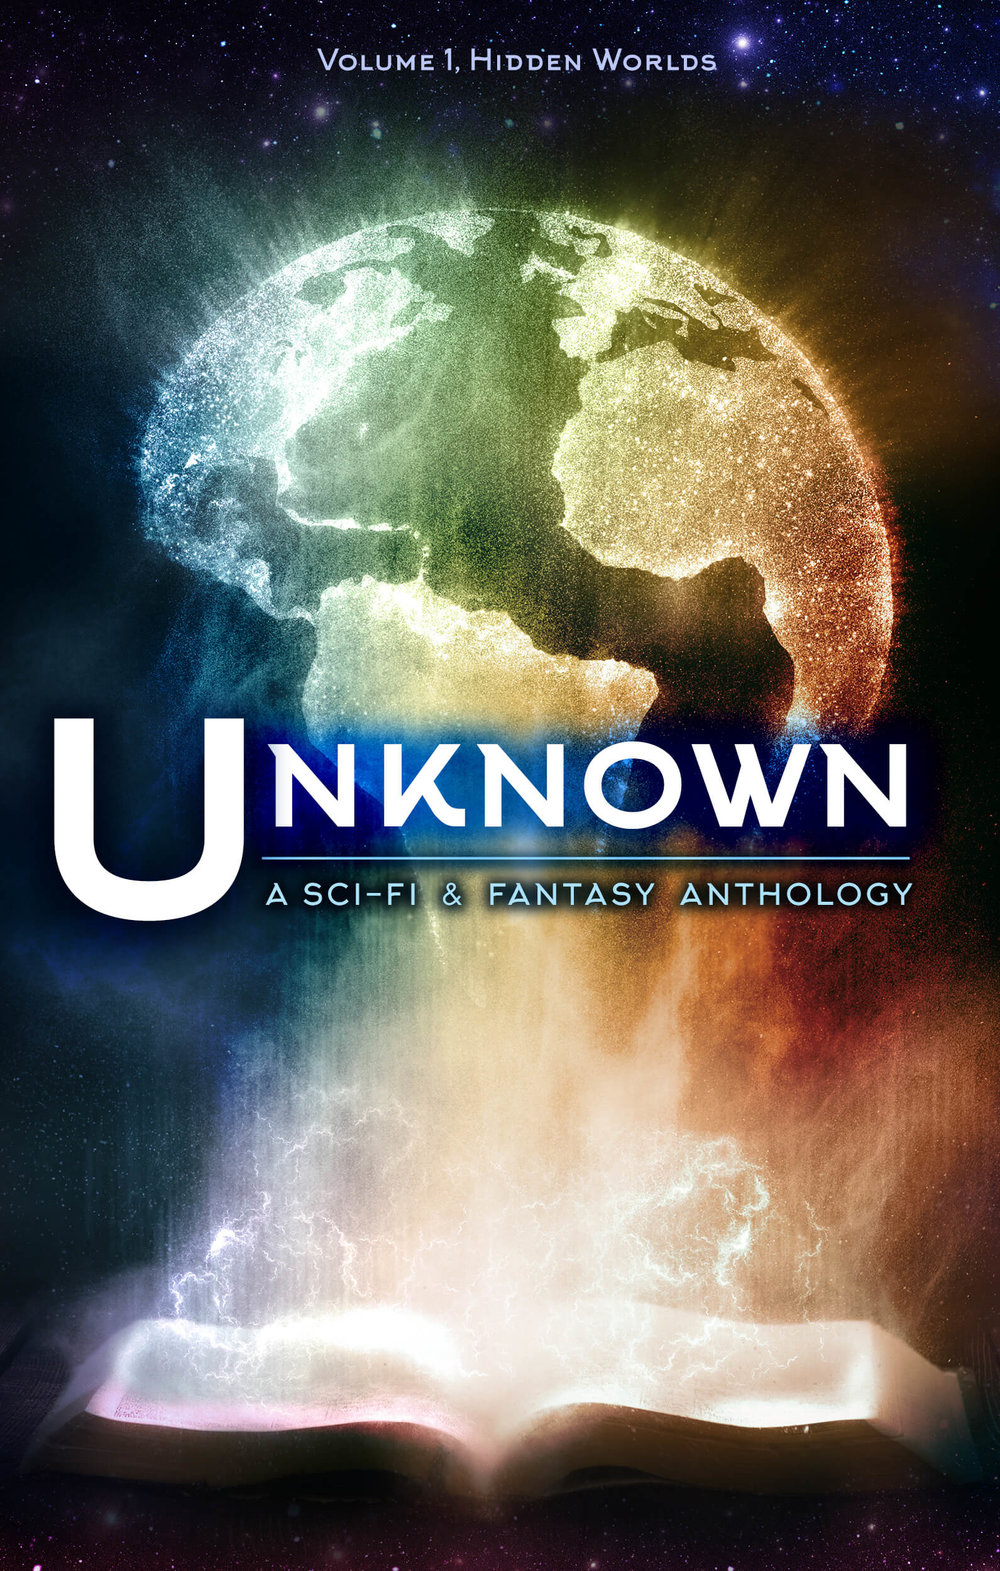 Unknown - A collection of twenty science fiction & fantasy short stories and novellas about experiencing the Unknown.